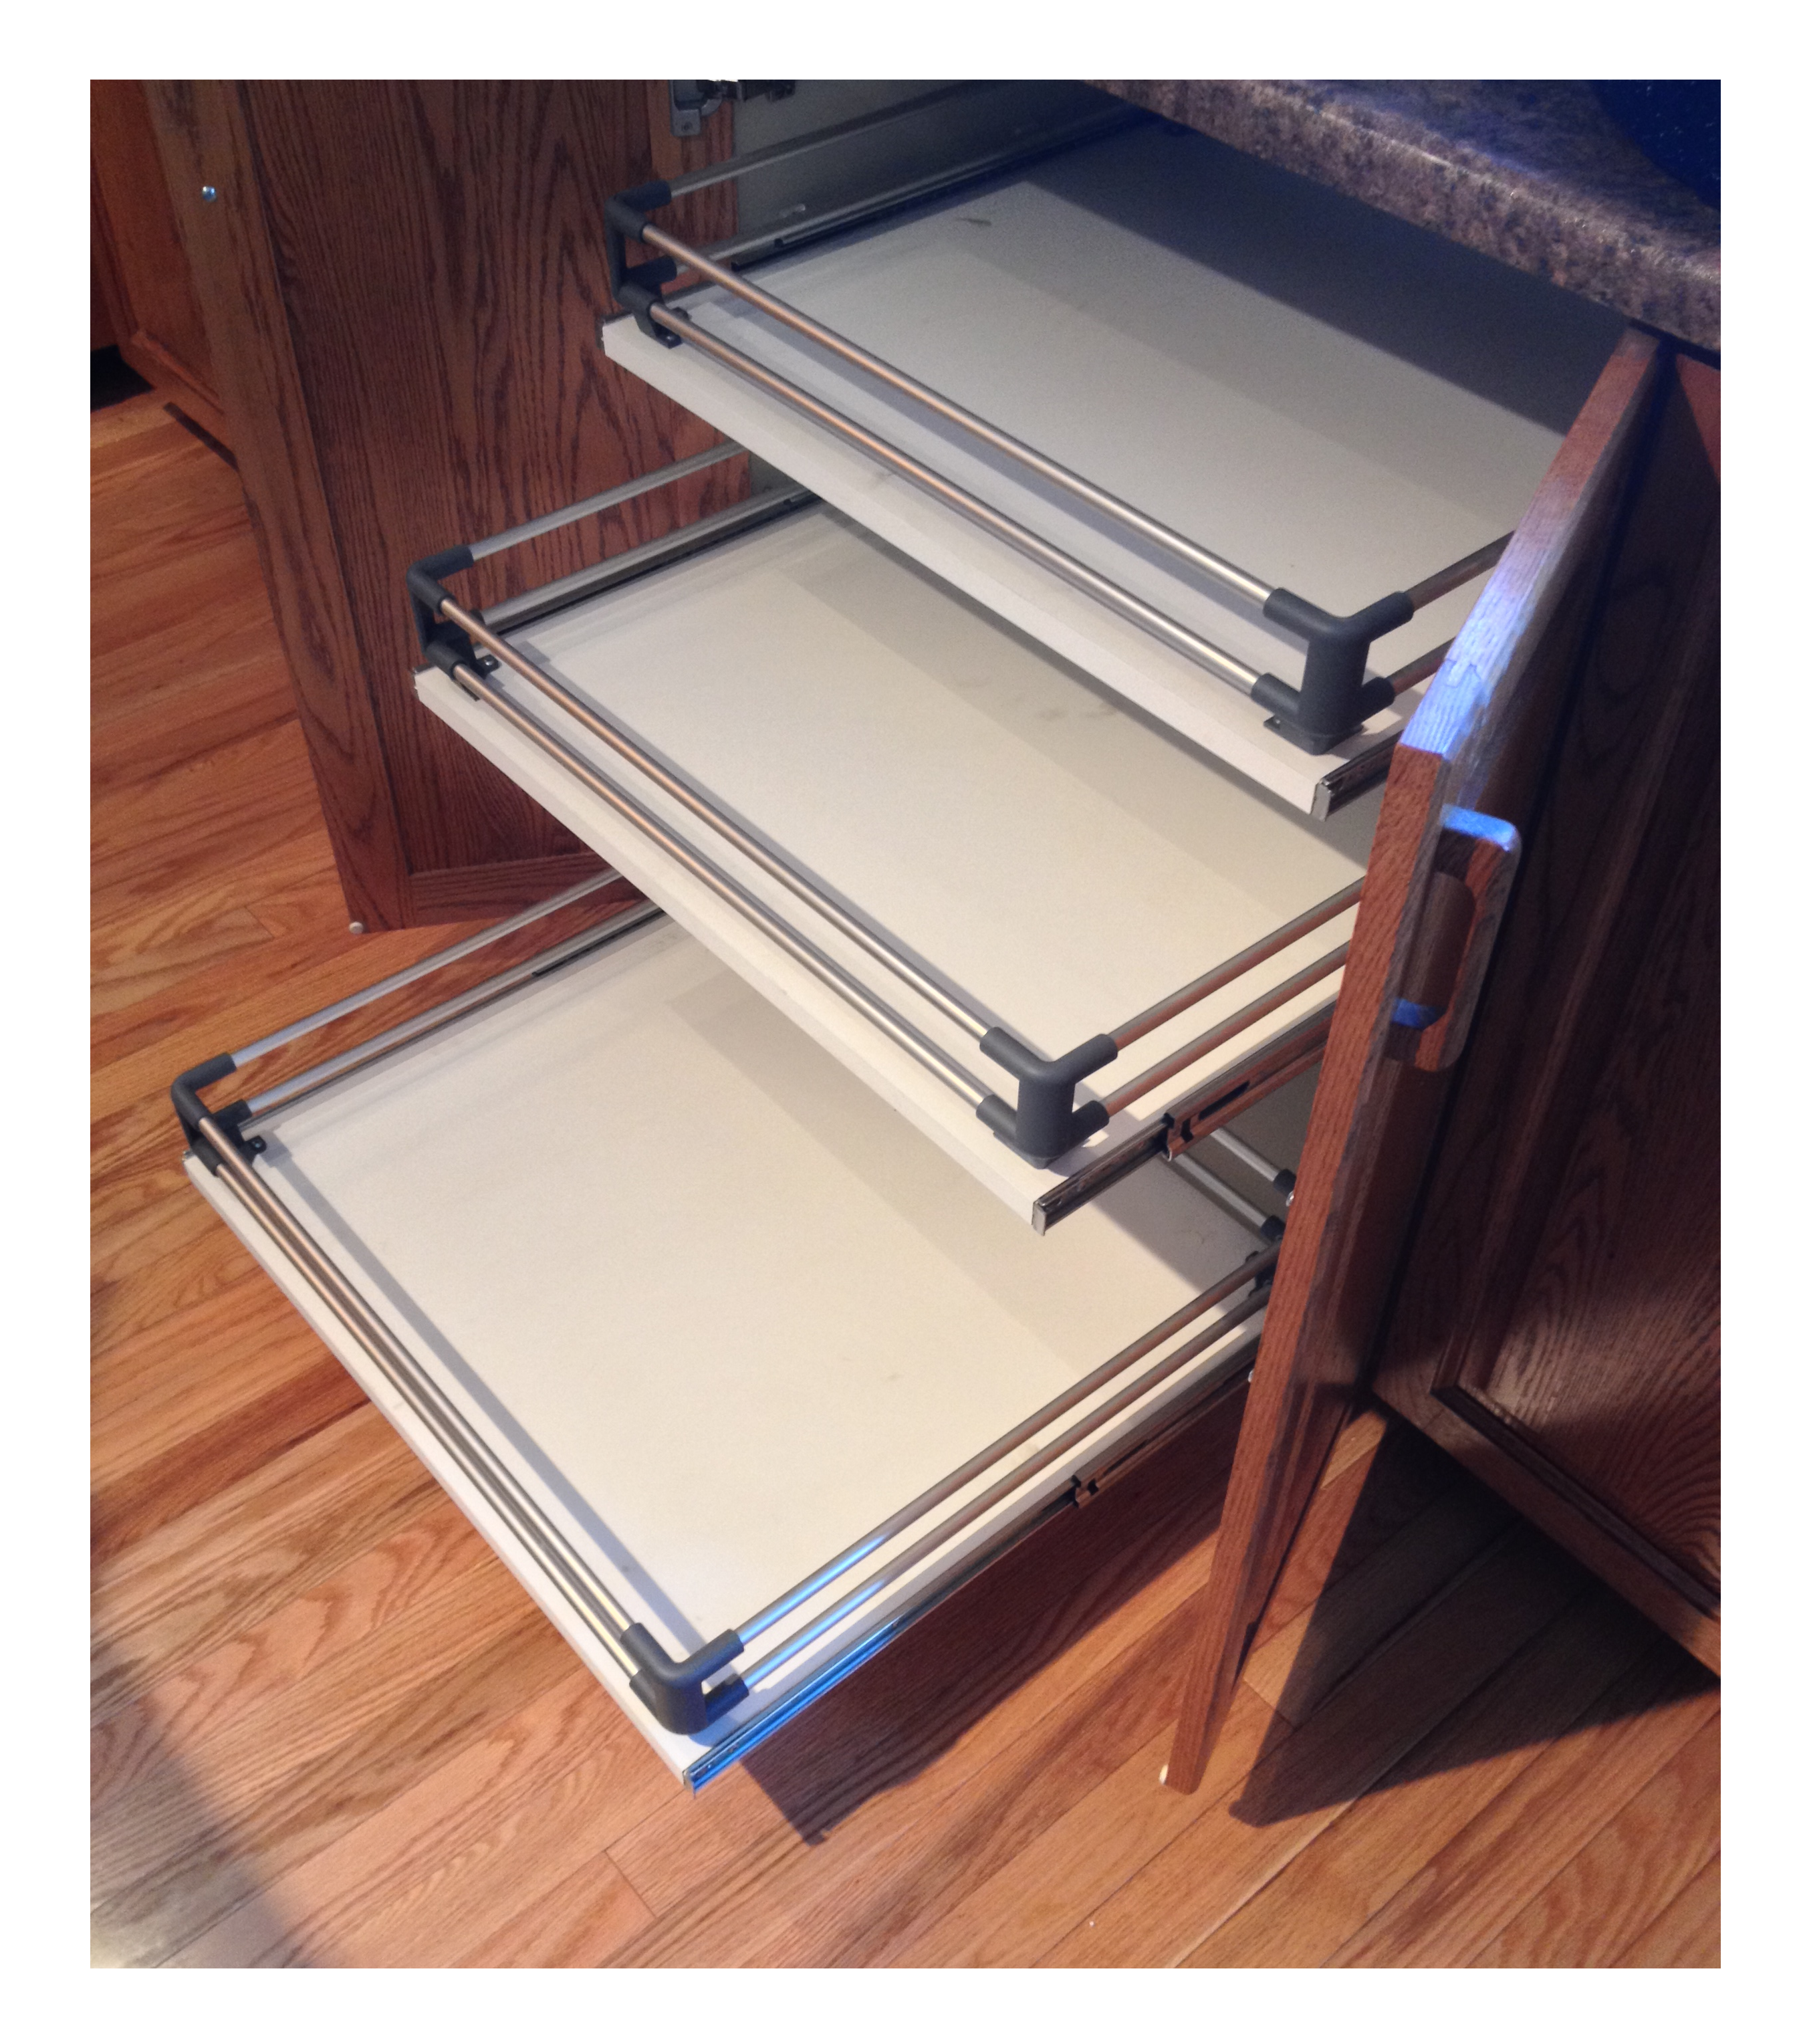 Under Cabinet Drop Down Shelf Hardware: Pull-Outs, Hardware, Hinges